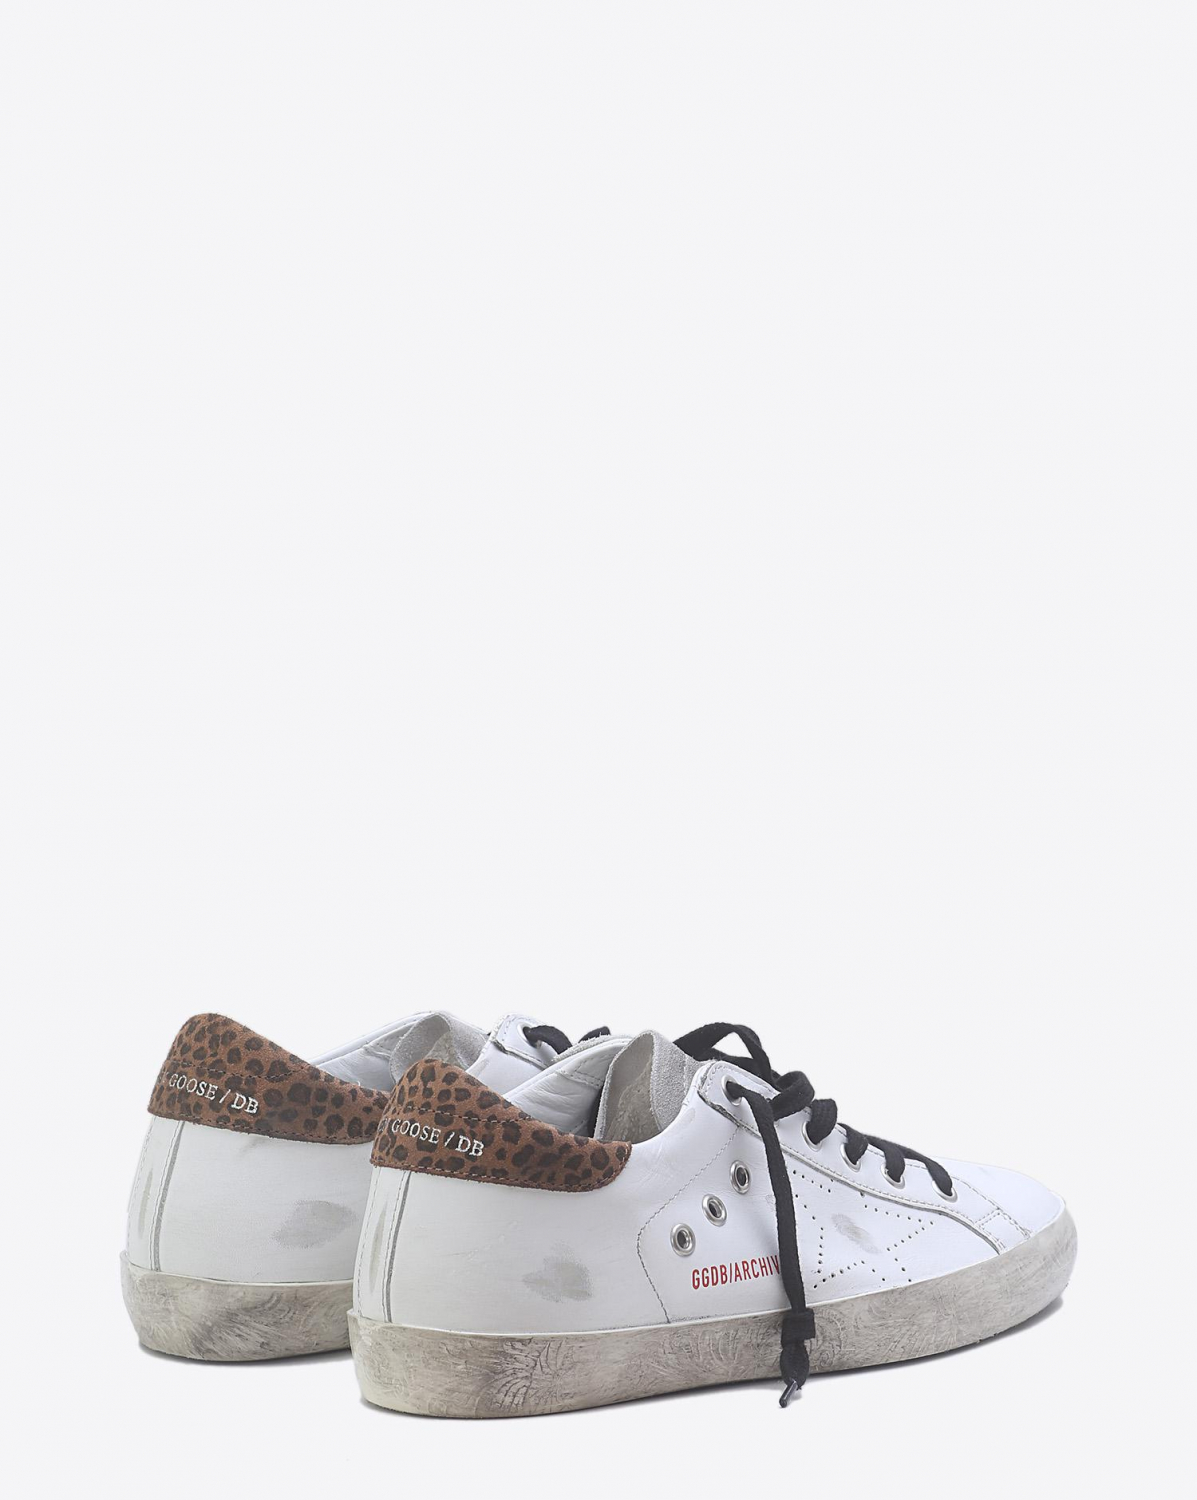 Golden Goose Woman Pré-Collection Sneakers Superstar - White Léopard Skate